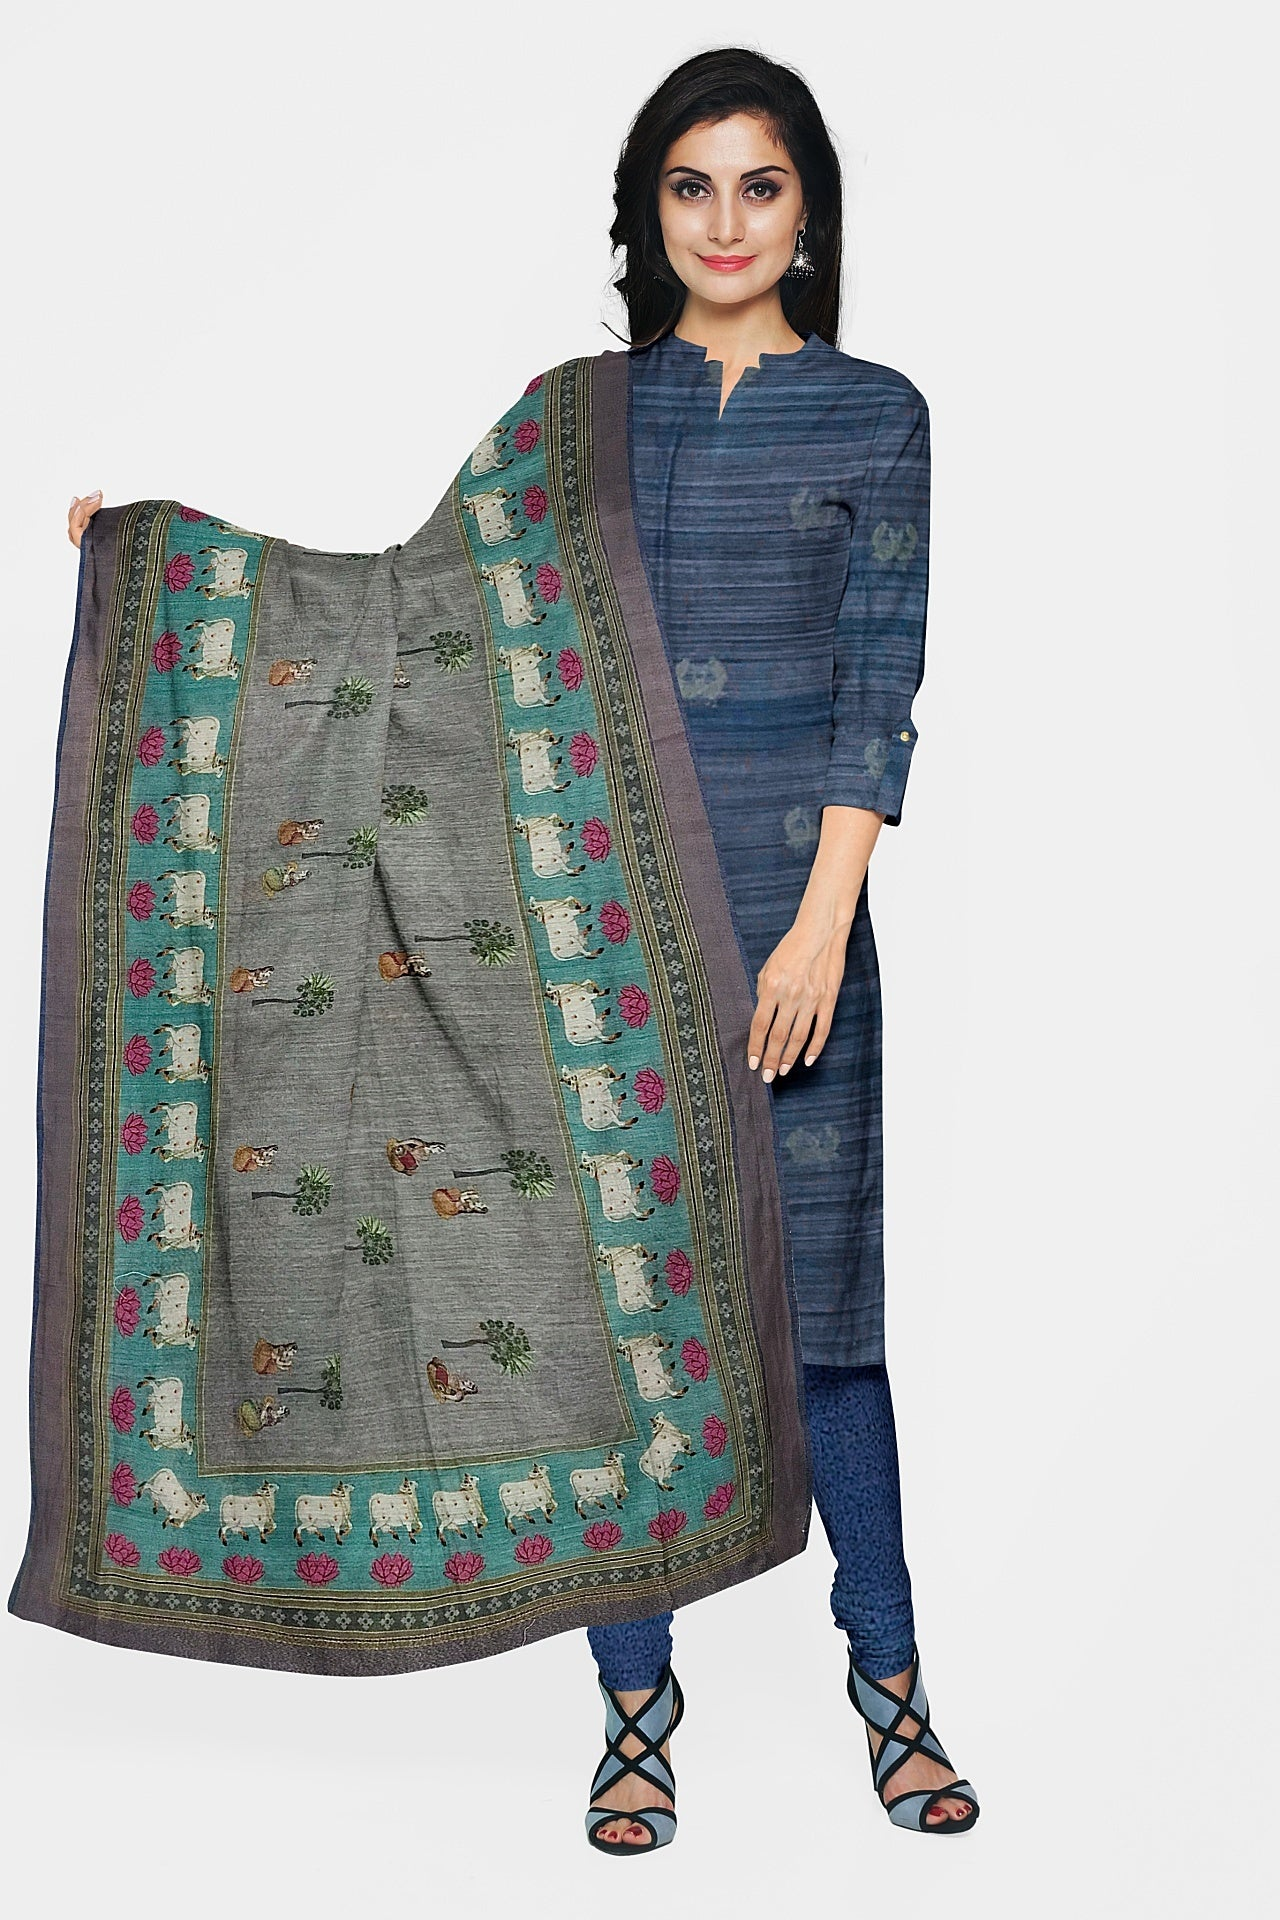 Denim Blue Khadi Matka Suit Fabric Set (Set of 3)